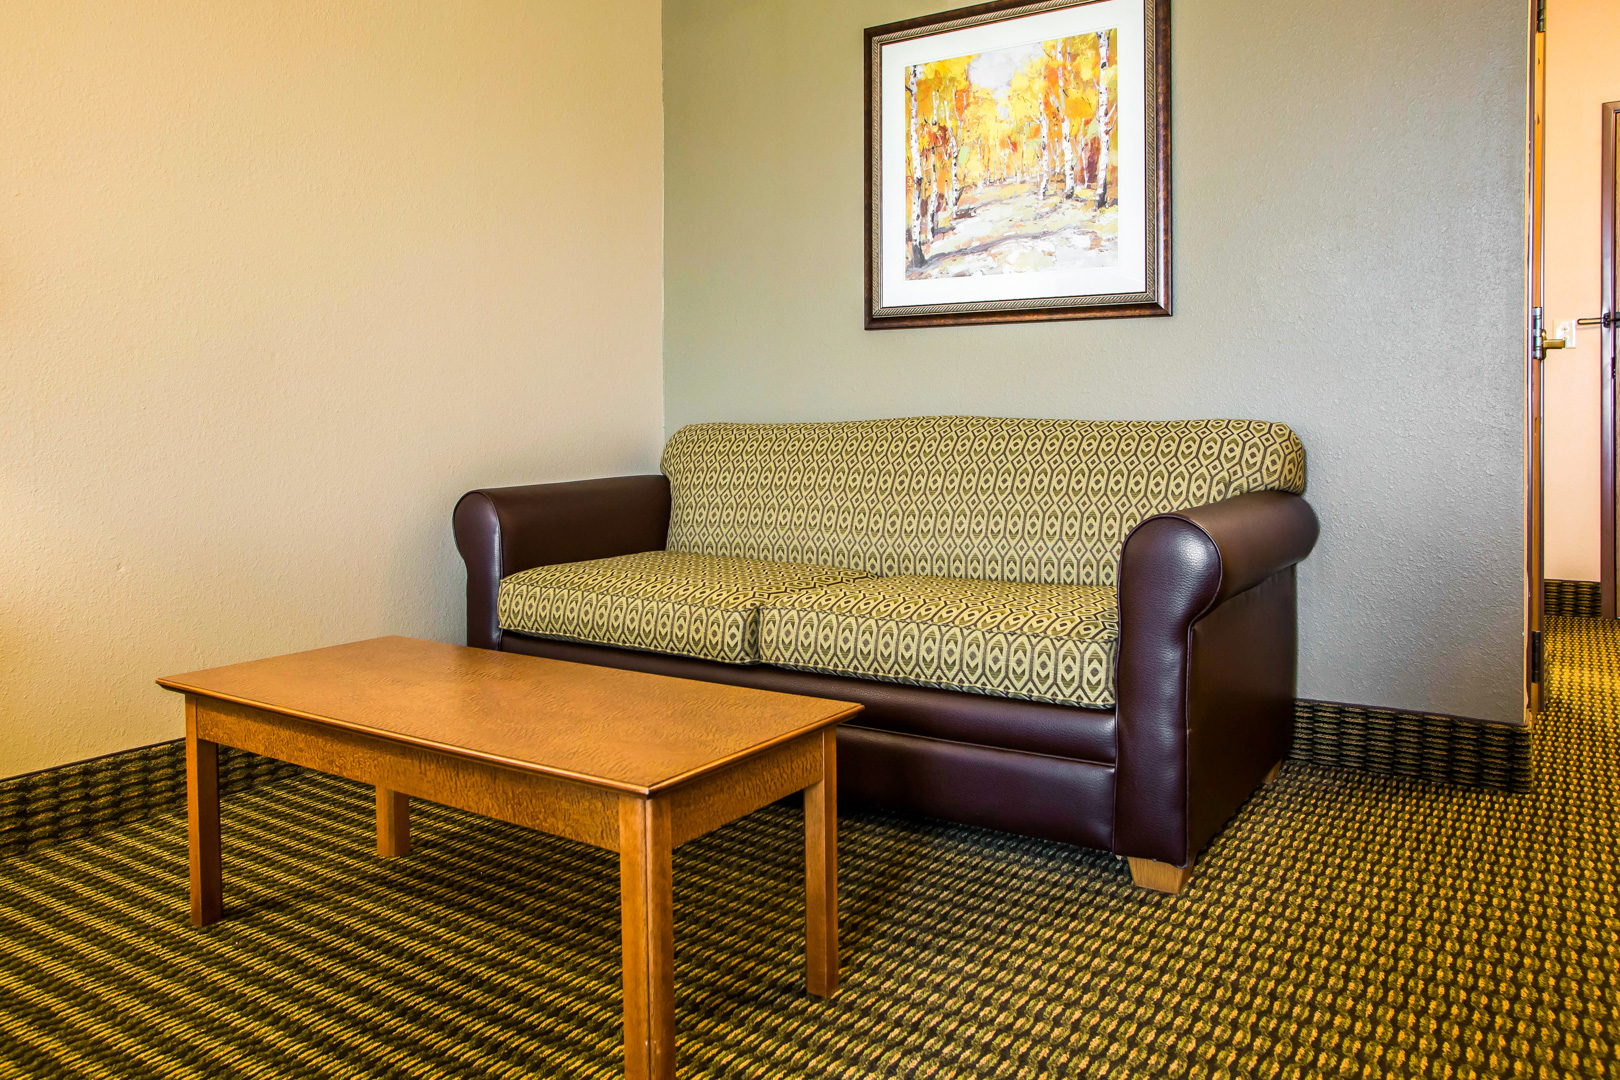 Comfort Inn & Suites, Chillicothe MO